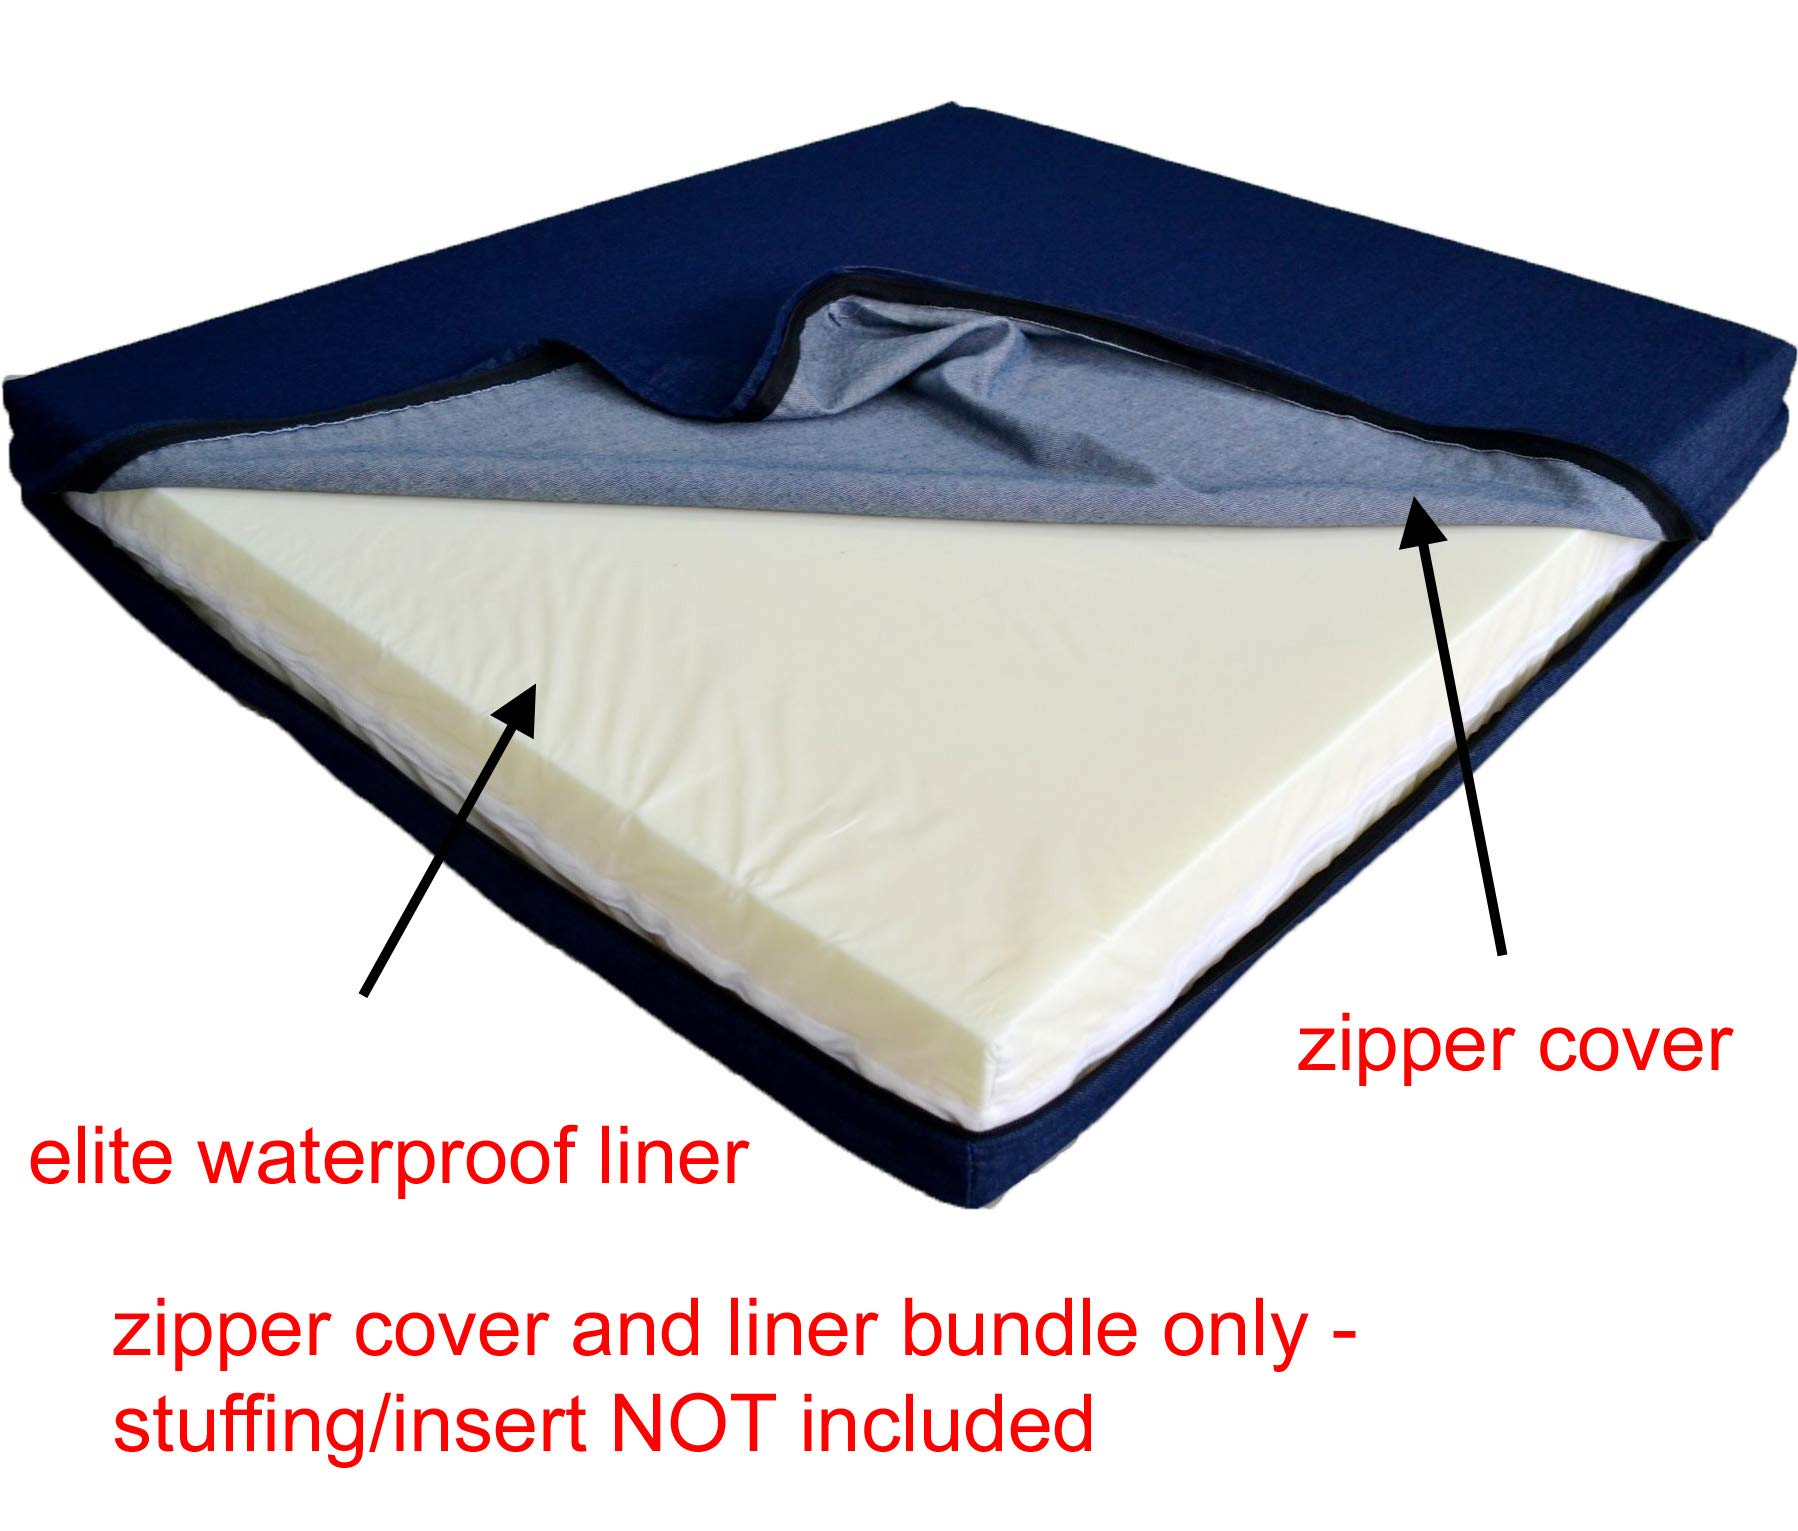 PetBed4Less DIY Durable Dog Bed Dog Pillow Pet Bed Blue Denim External Removable Duvet Case and Internal Elite Waterproof Liner - 8 Sizes - Covers only